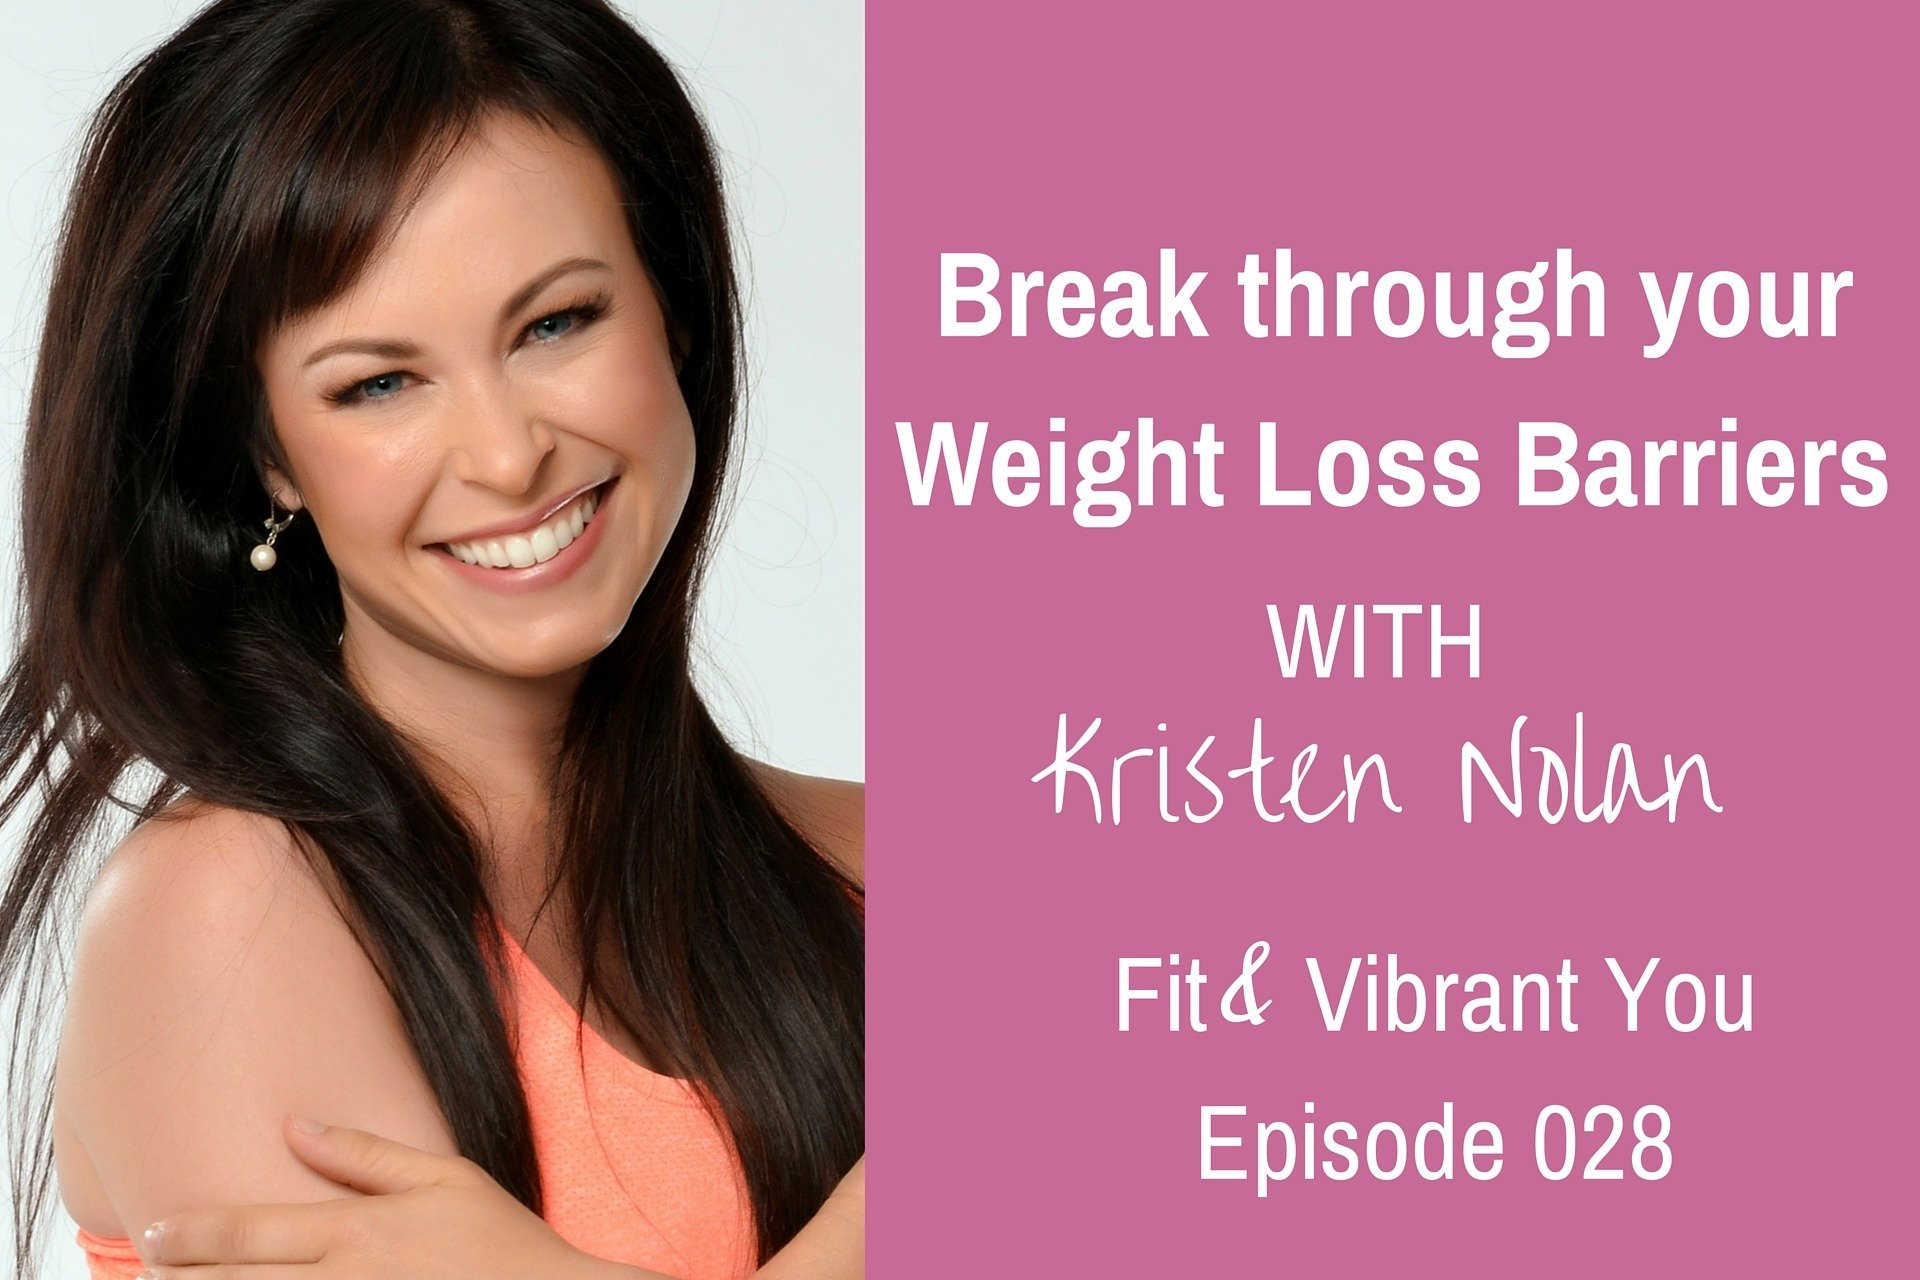 FVY 028: Break through your Weight Loss Barriers with Kristen Nolan